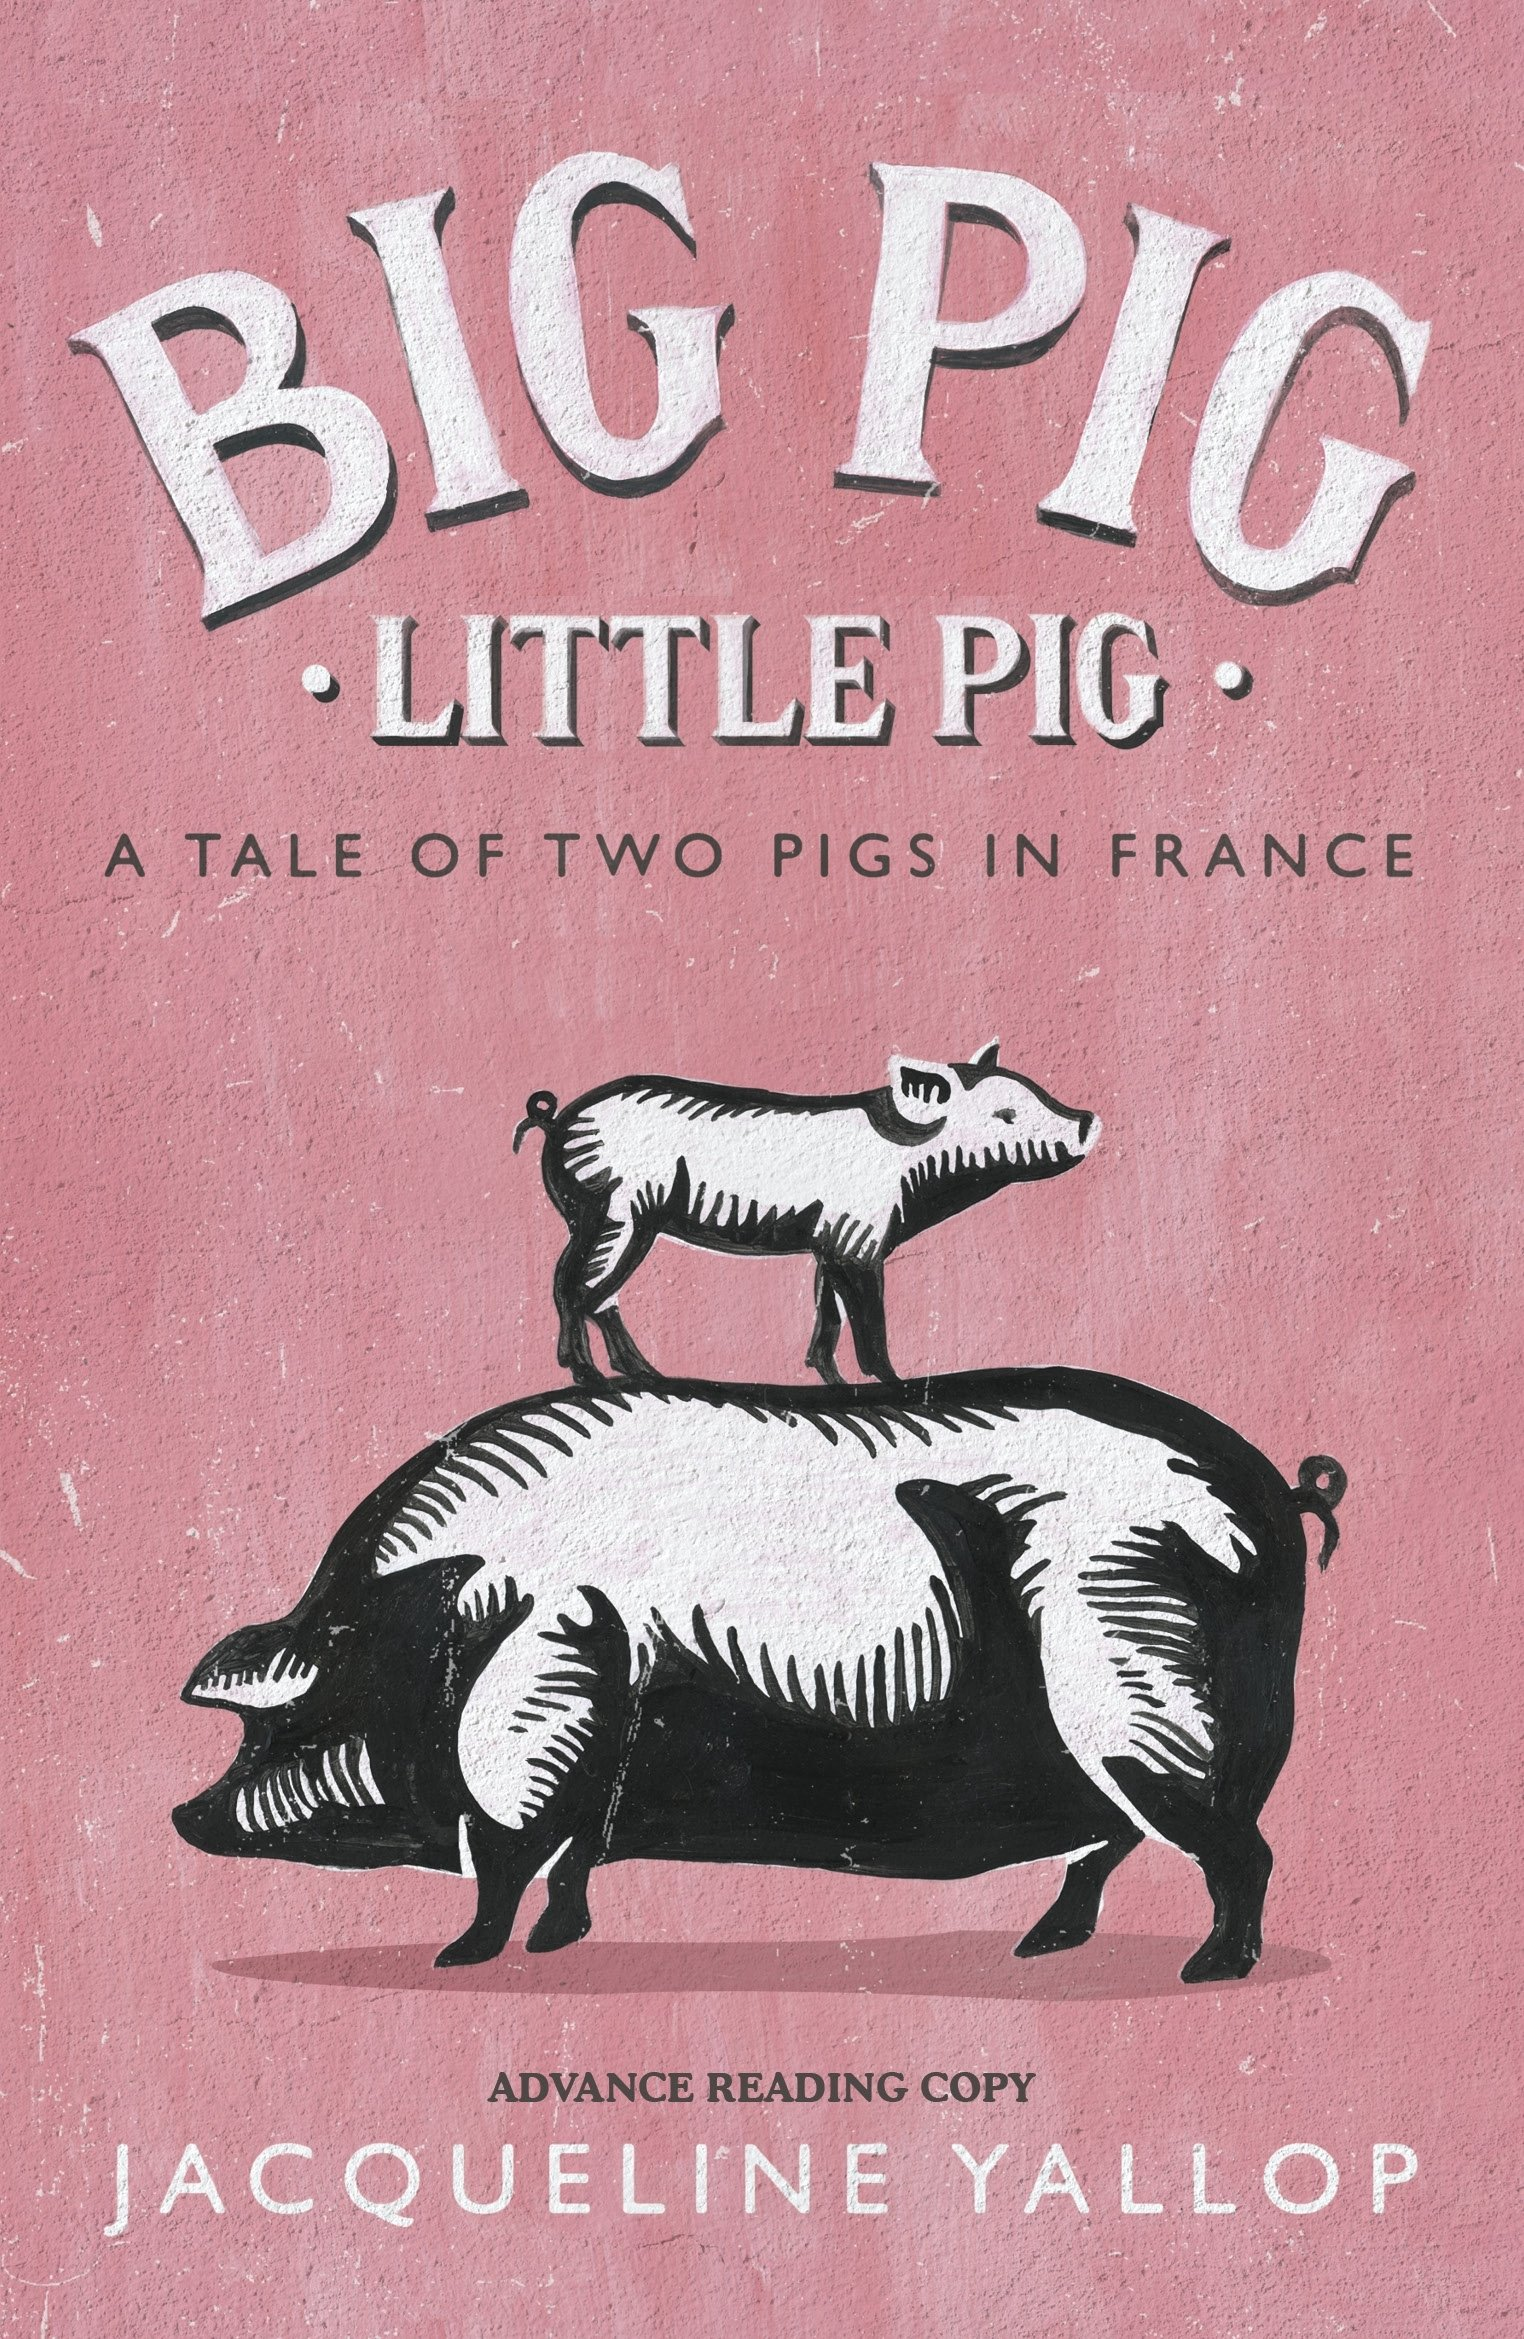 Big Pig Little A Tale Of Two Pigs In France Jacqueline Yallop 9780241261415 Amazon Books